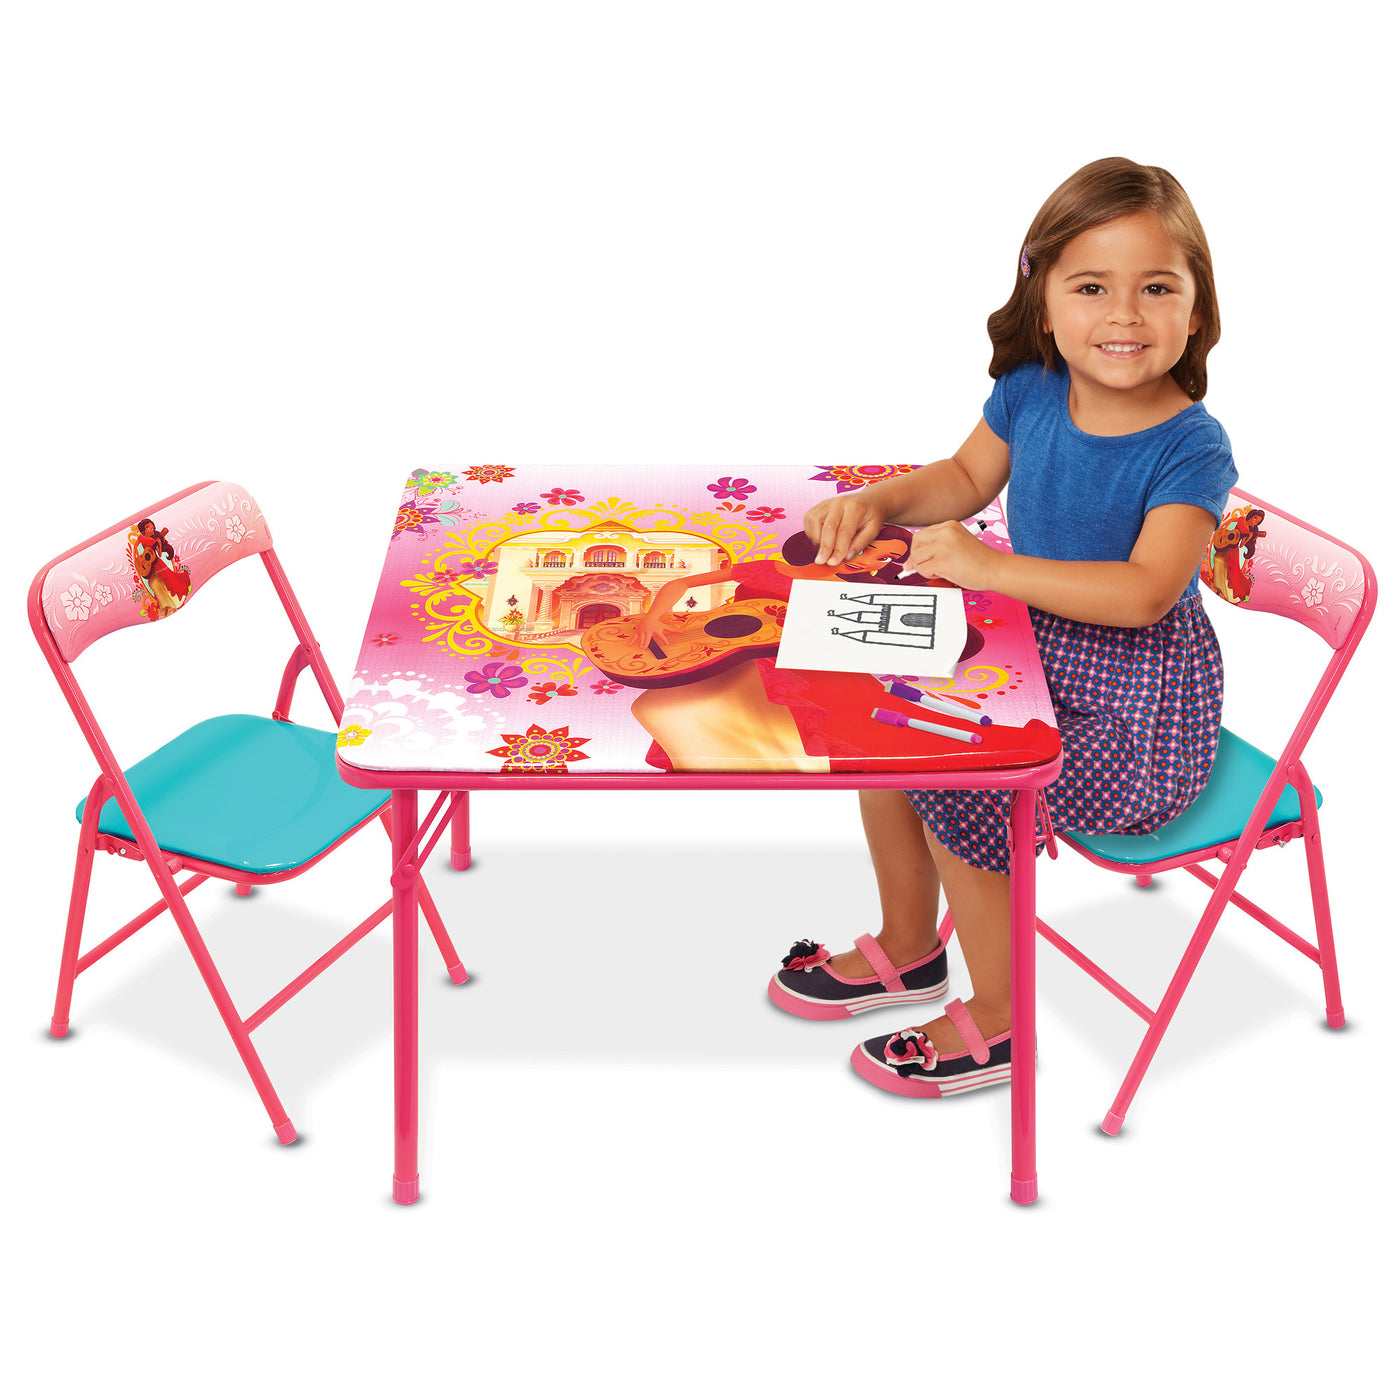 Sensational Disney Elena Of Avalor Activity Table Set Caraccident5 Cool Chair Designs And Ideas Caraccident5Info